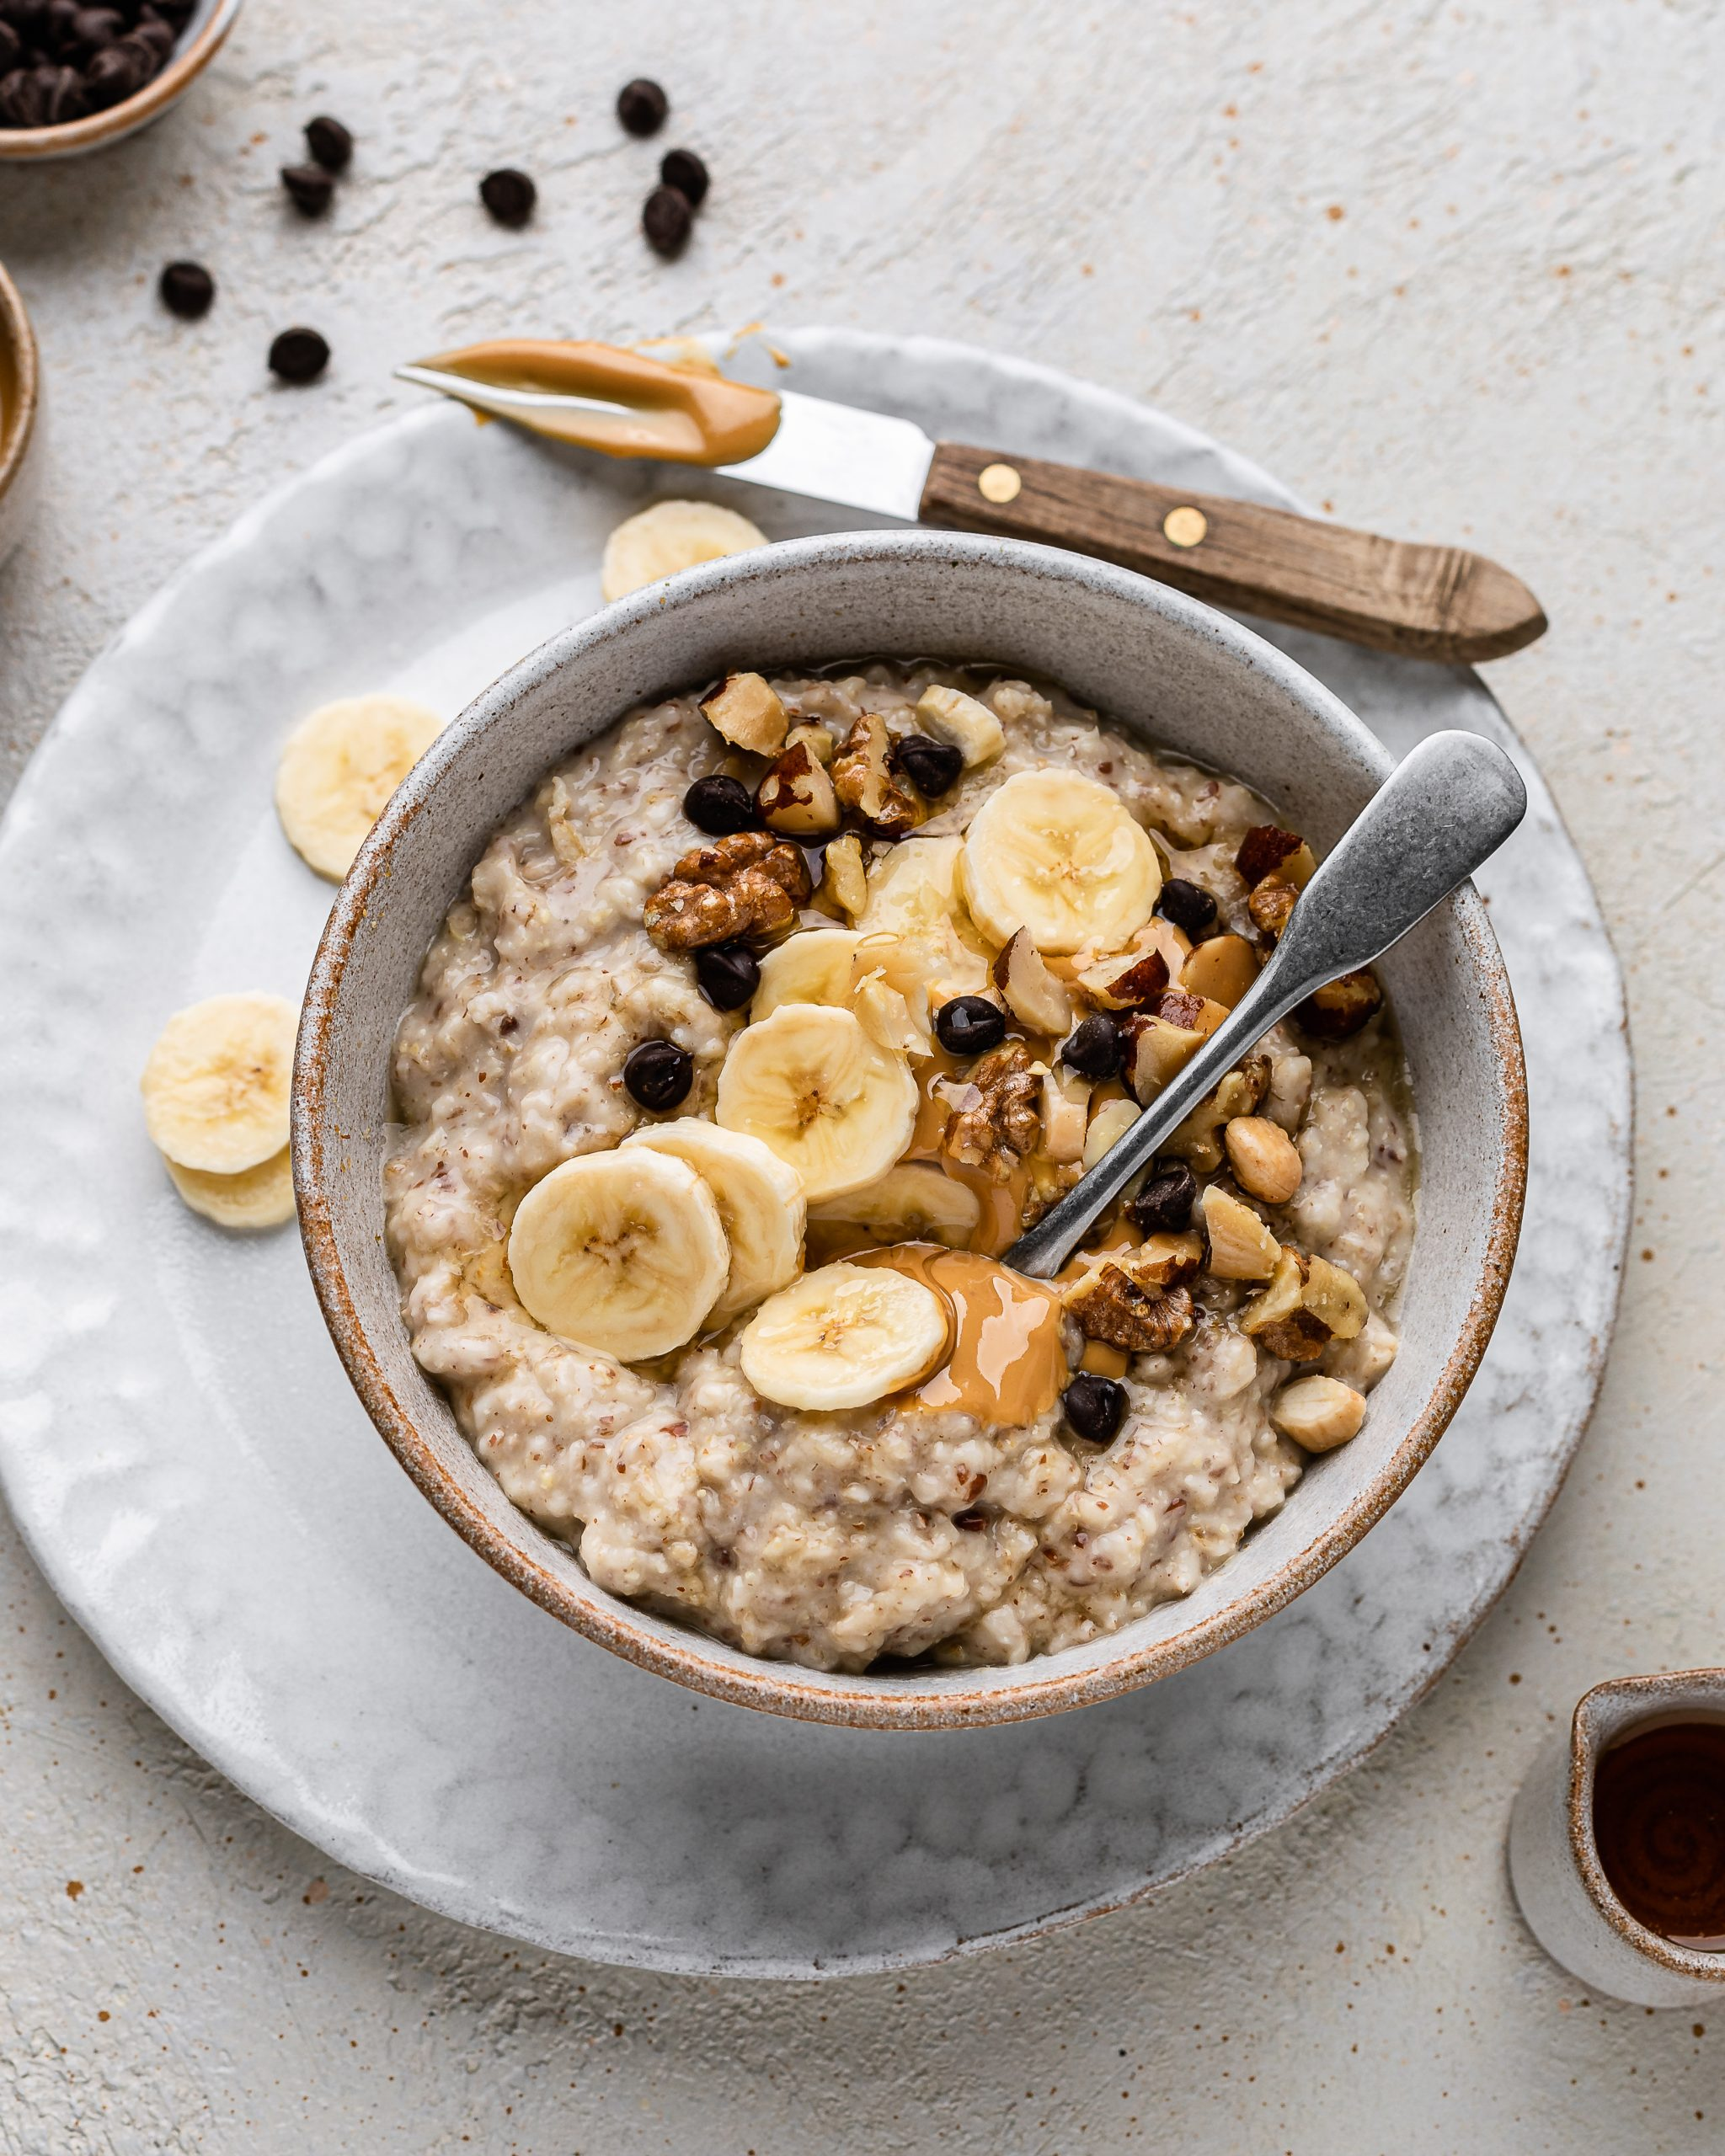 Banana Nut Porridge